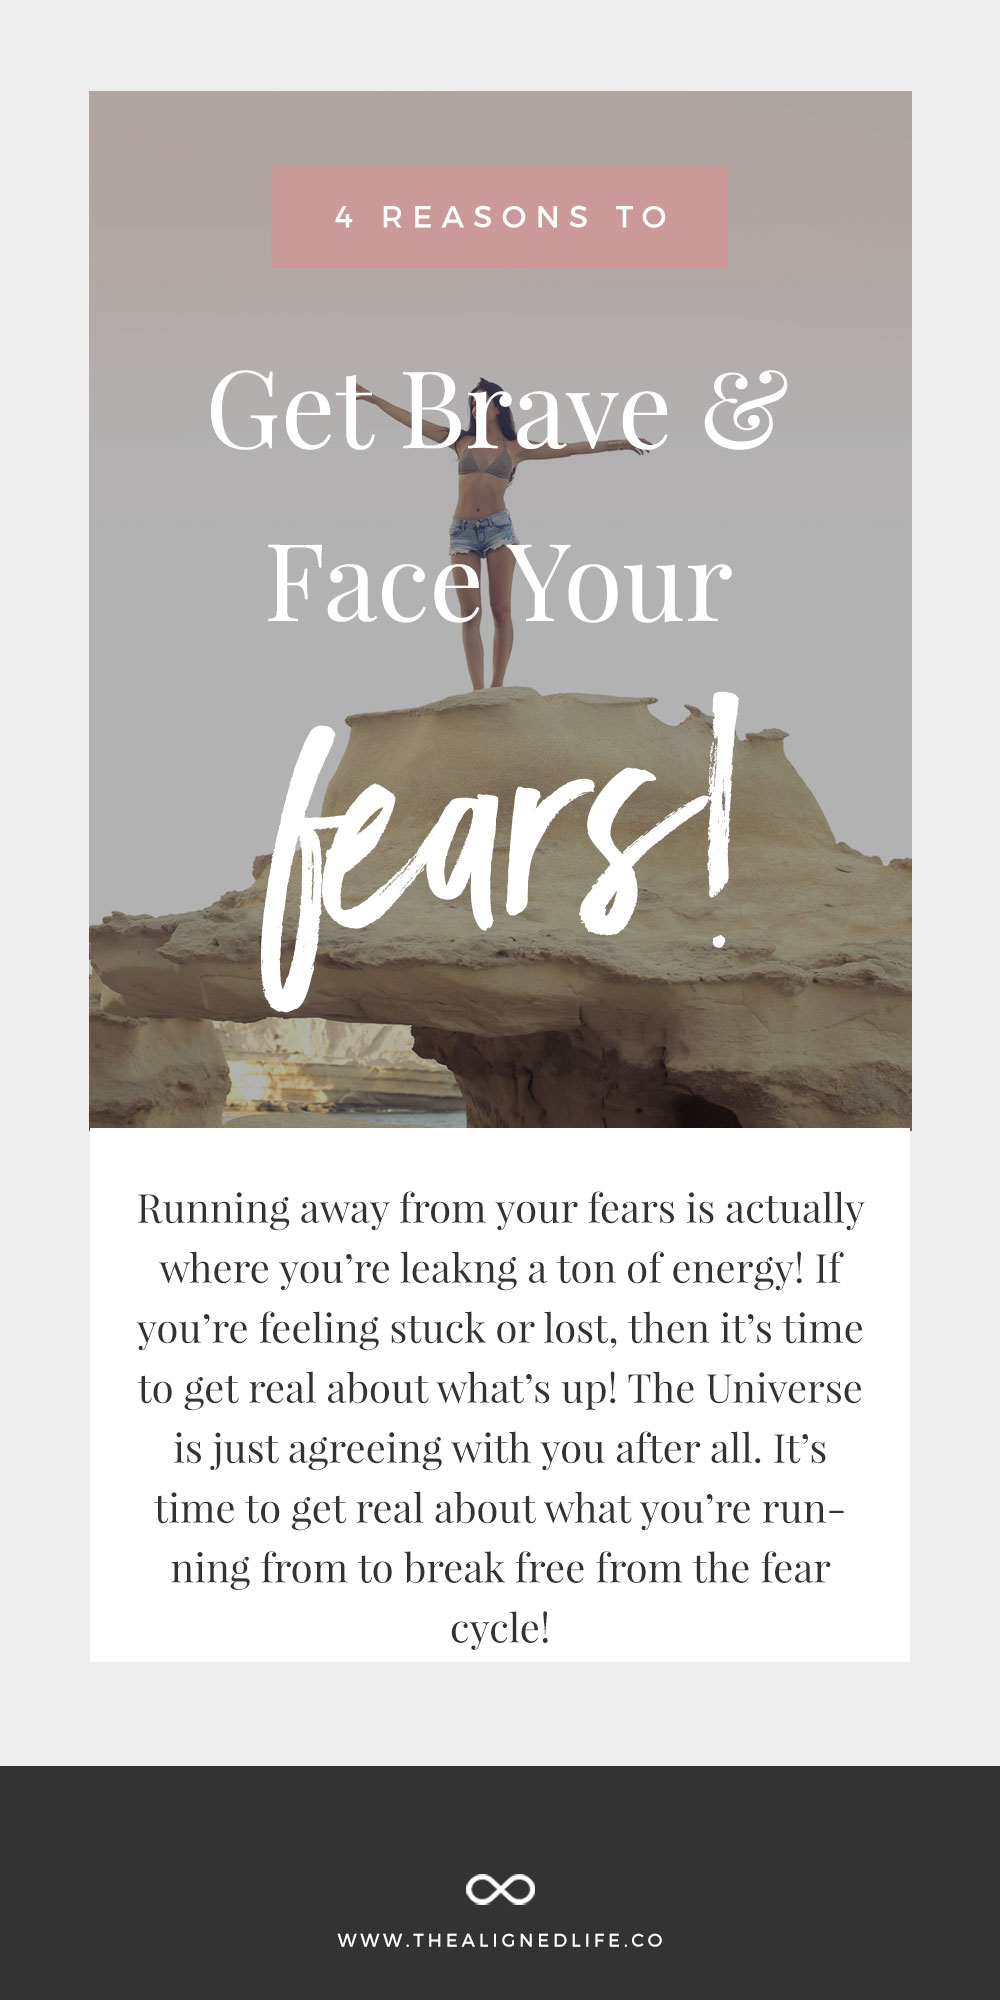 4 Reasons To Get Brave & Face Your Fears! Why Running Away Is Holding You Back